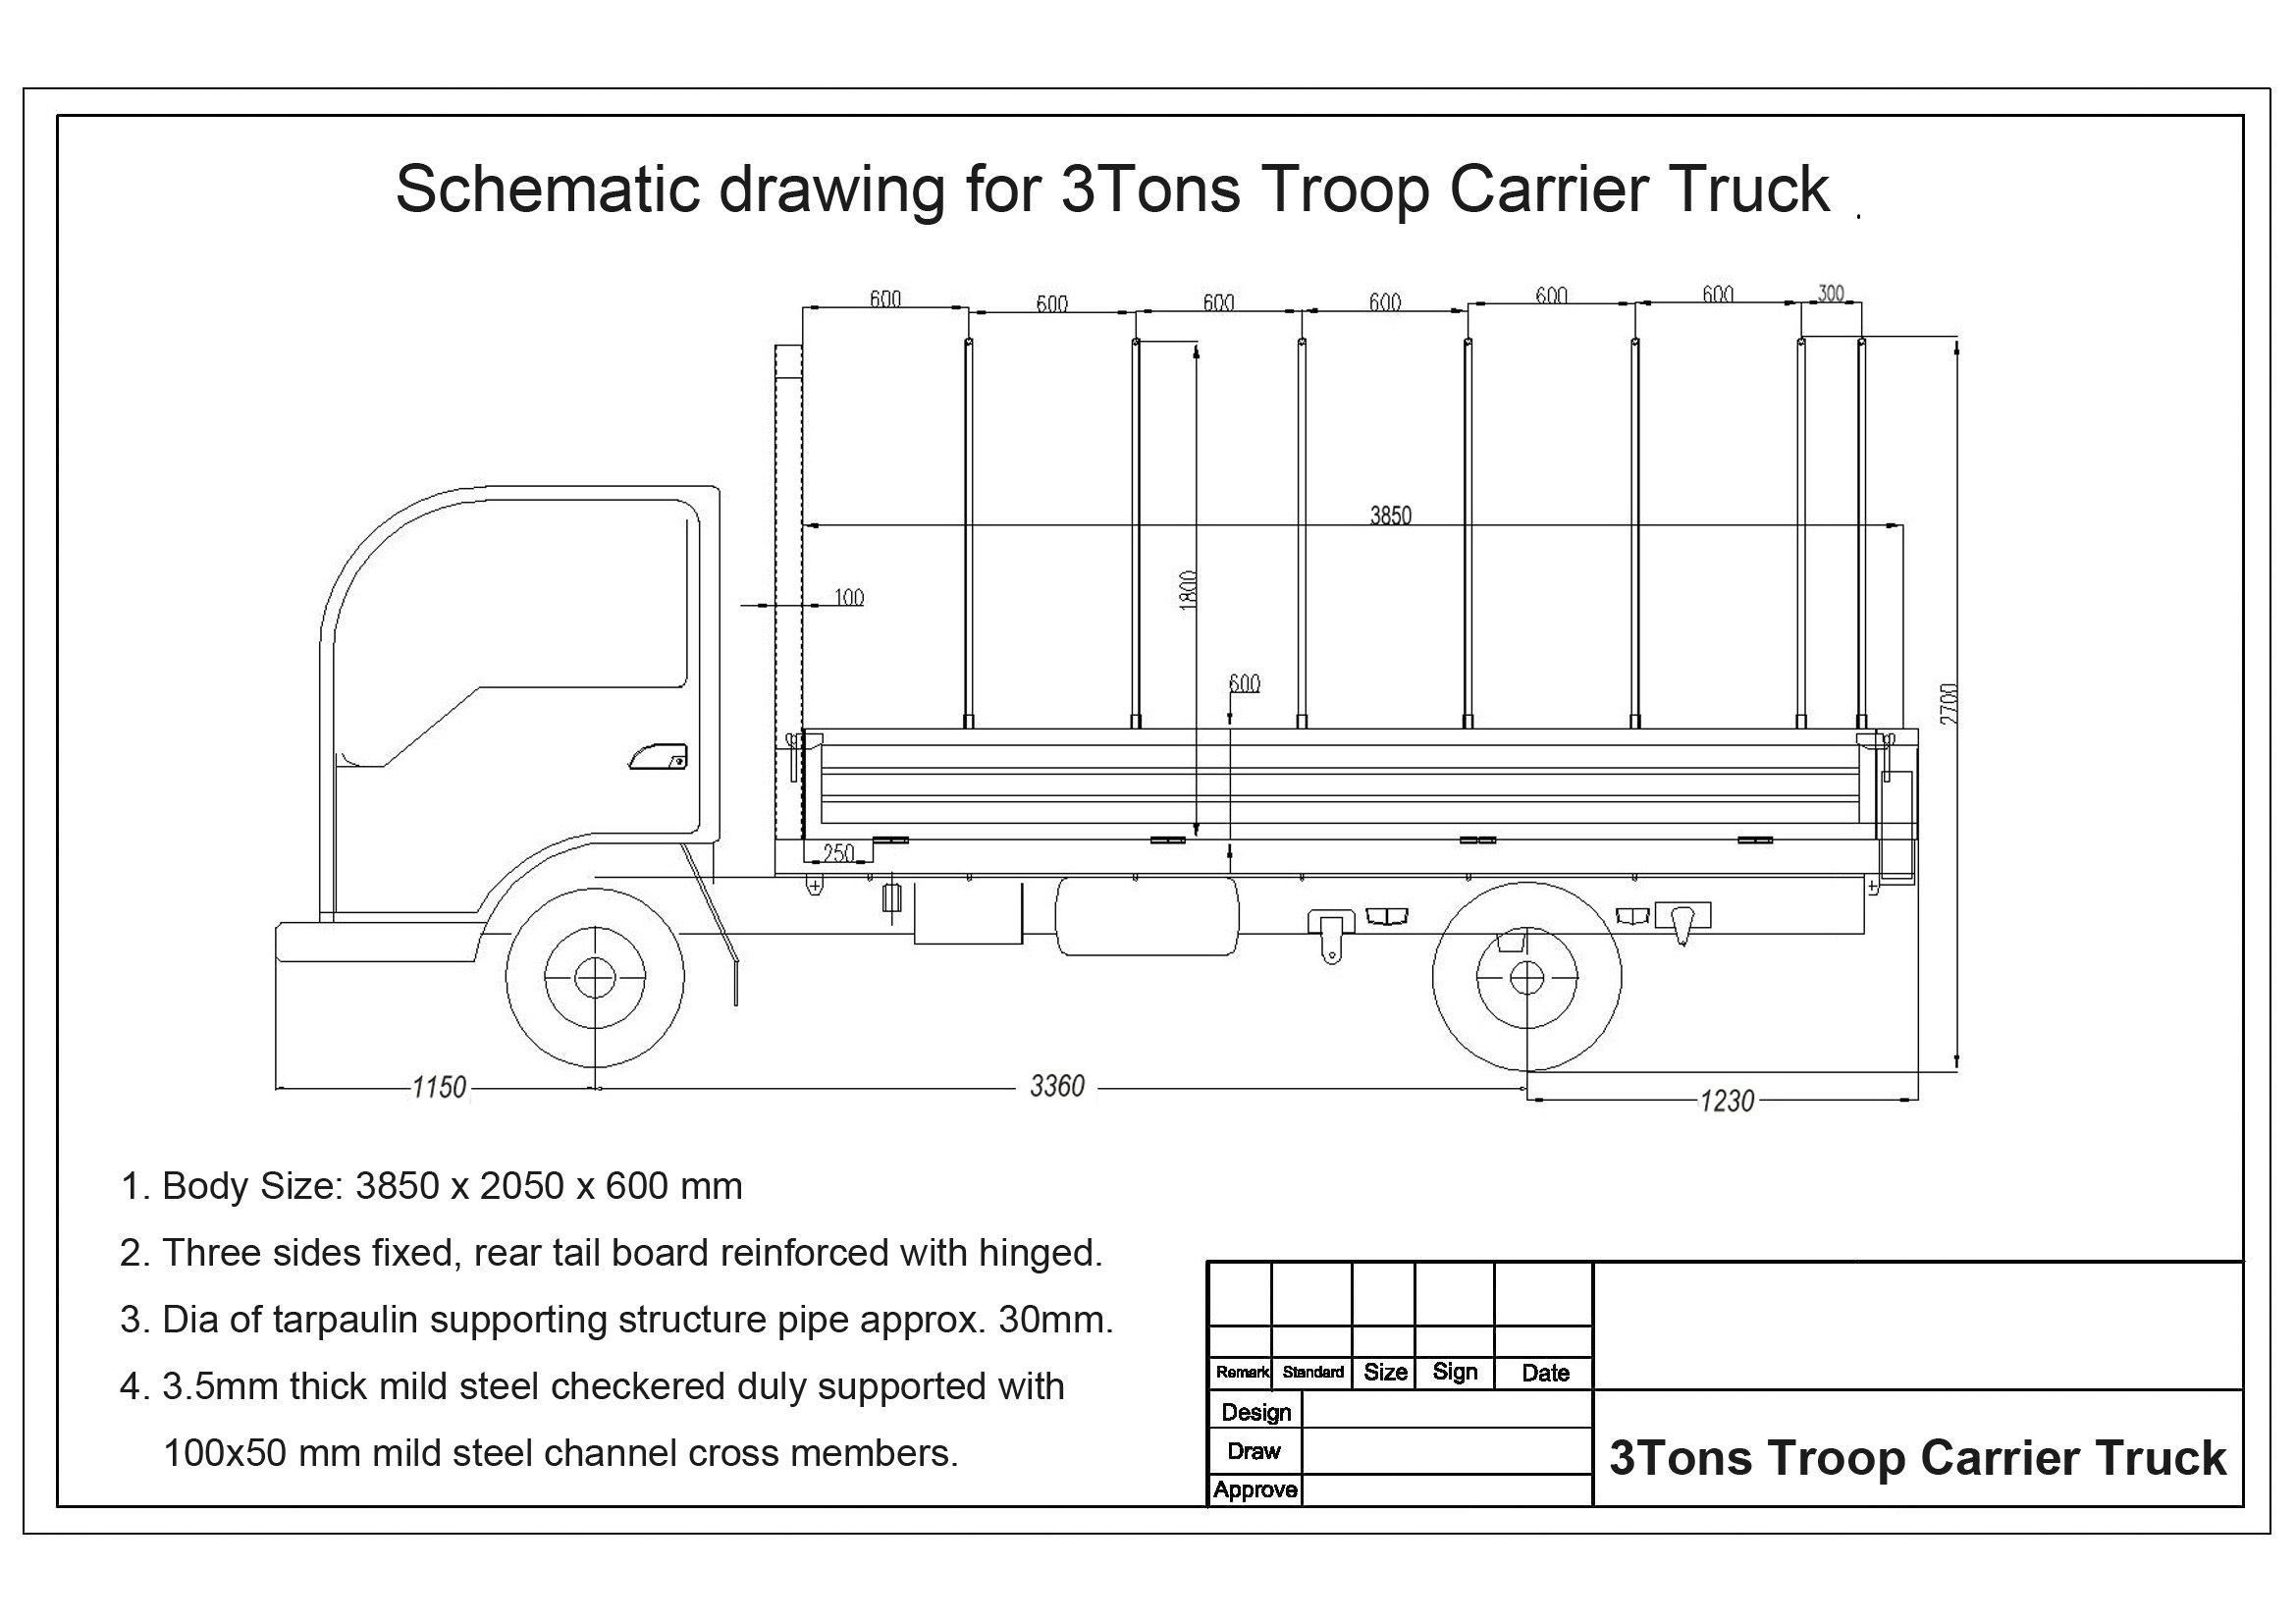 Trucks for Pakistan // SPV Quotation of 3Tons and 5Tons Troop Carrier Trucks